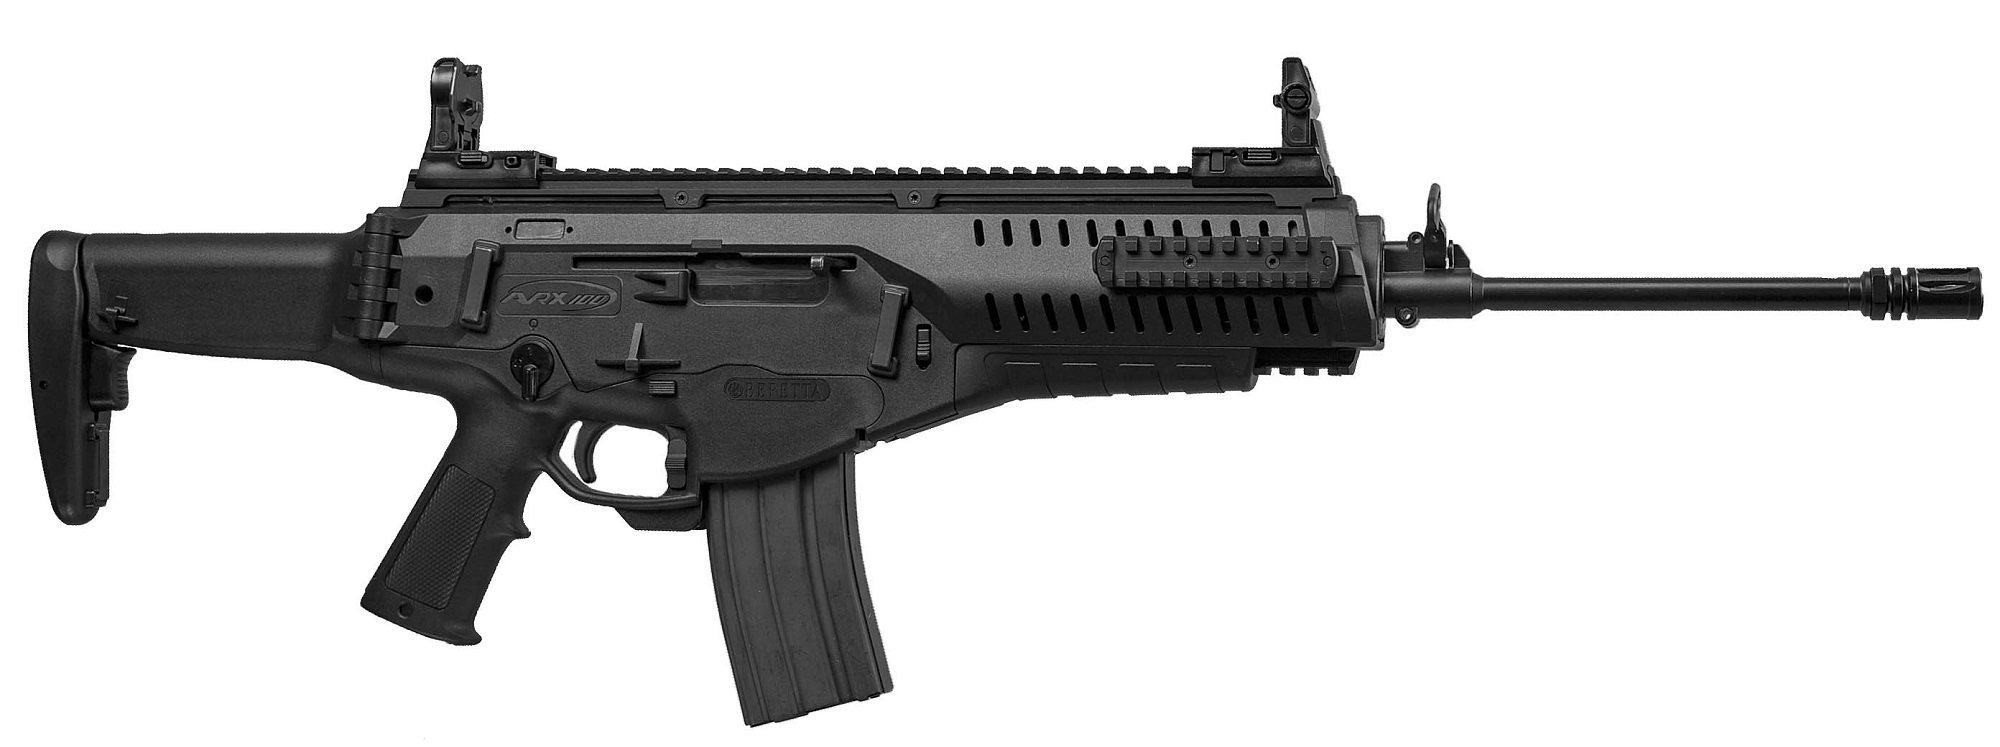 The Beretta ARX-100 semi-automatic rifle is chambered for the .223-Remington cartridge